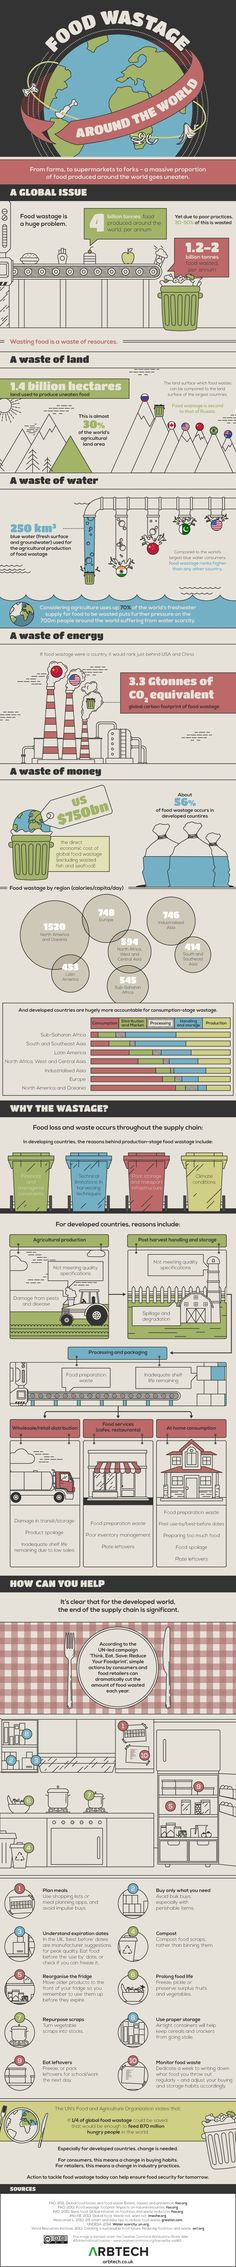 This interest me because I have never really thought about food waste being a problem, but it causes huge problems for the world and wastes lots of our natural resources.